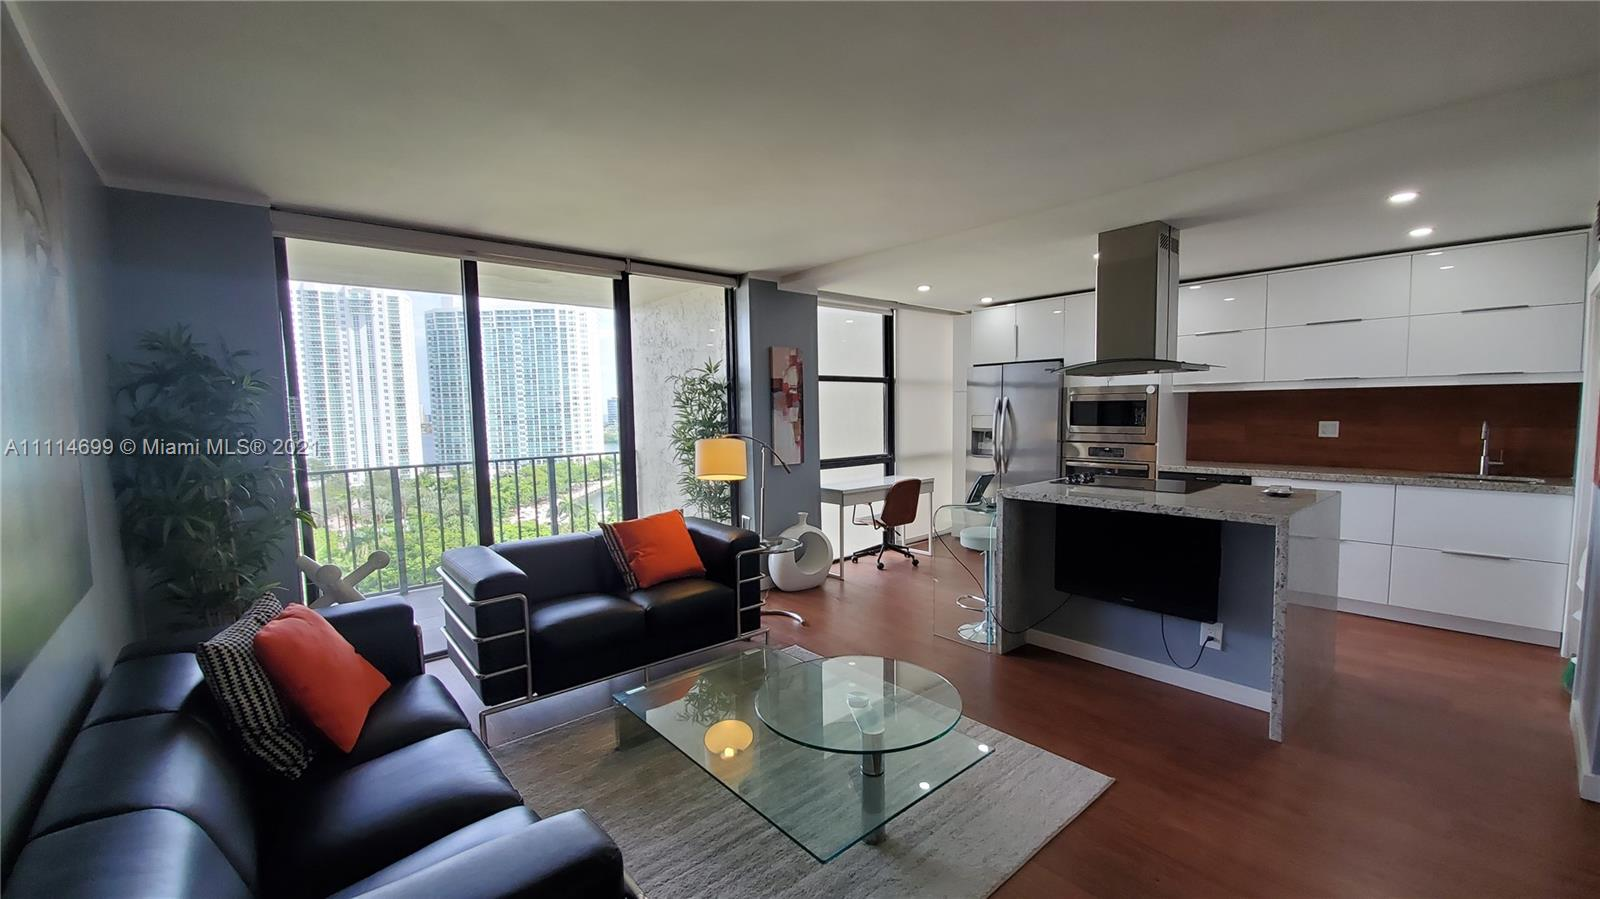 TOWER AT BISCAYNE COVE CO Condo,For Rent,TOWER AT BISCAYNE COVE CO Brickell,realty,broker,condos near me